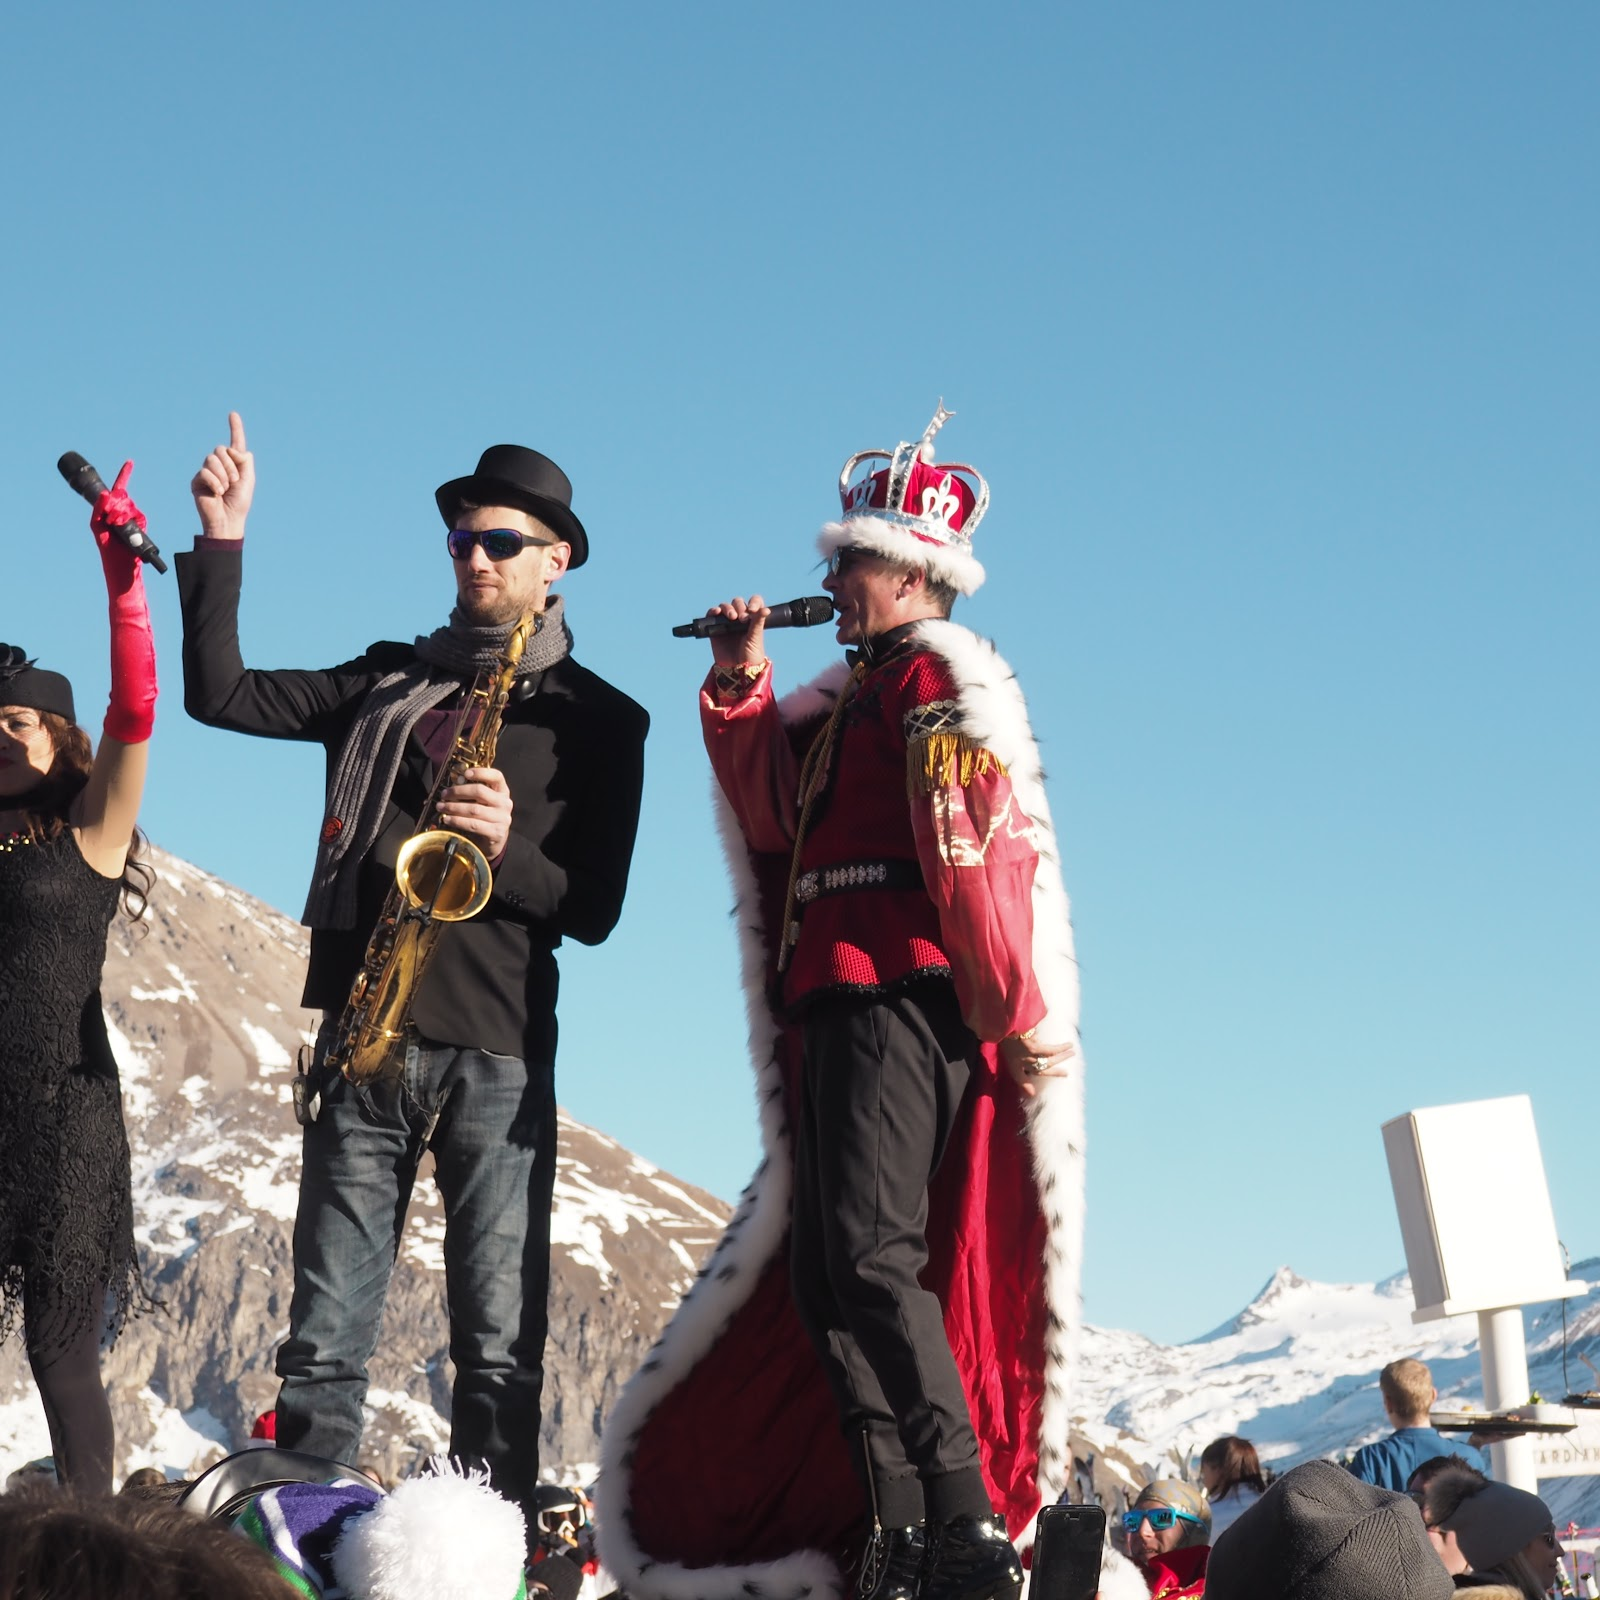 Kelly Starlight, La Folie Douce, Val d'Isere, France